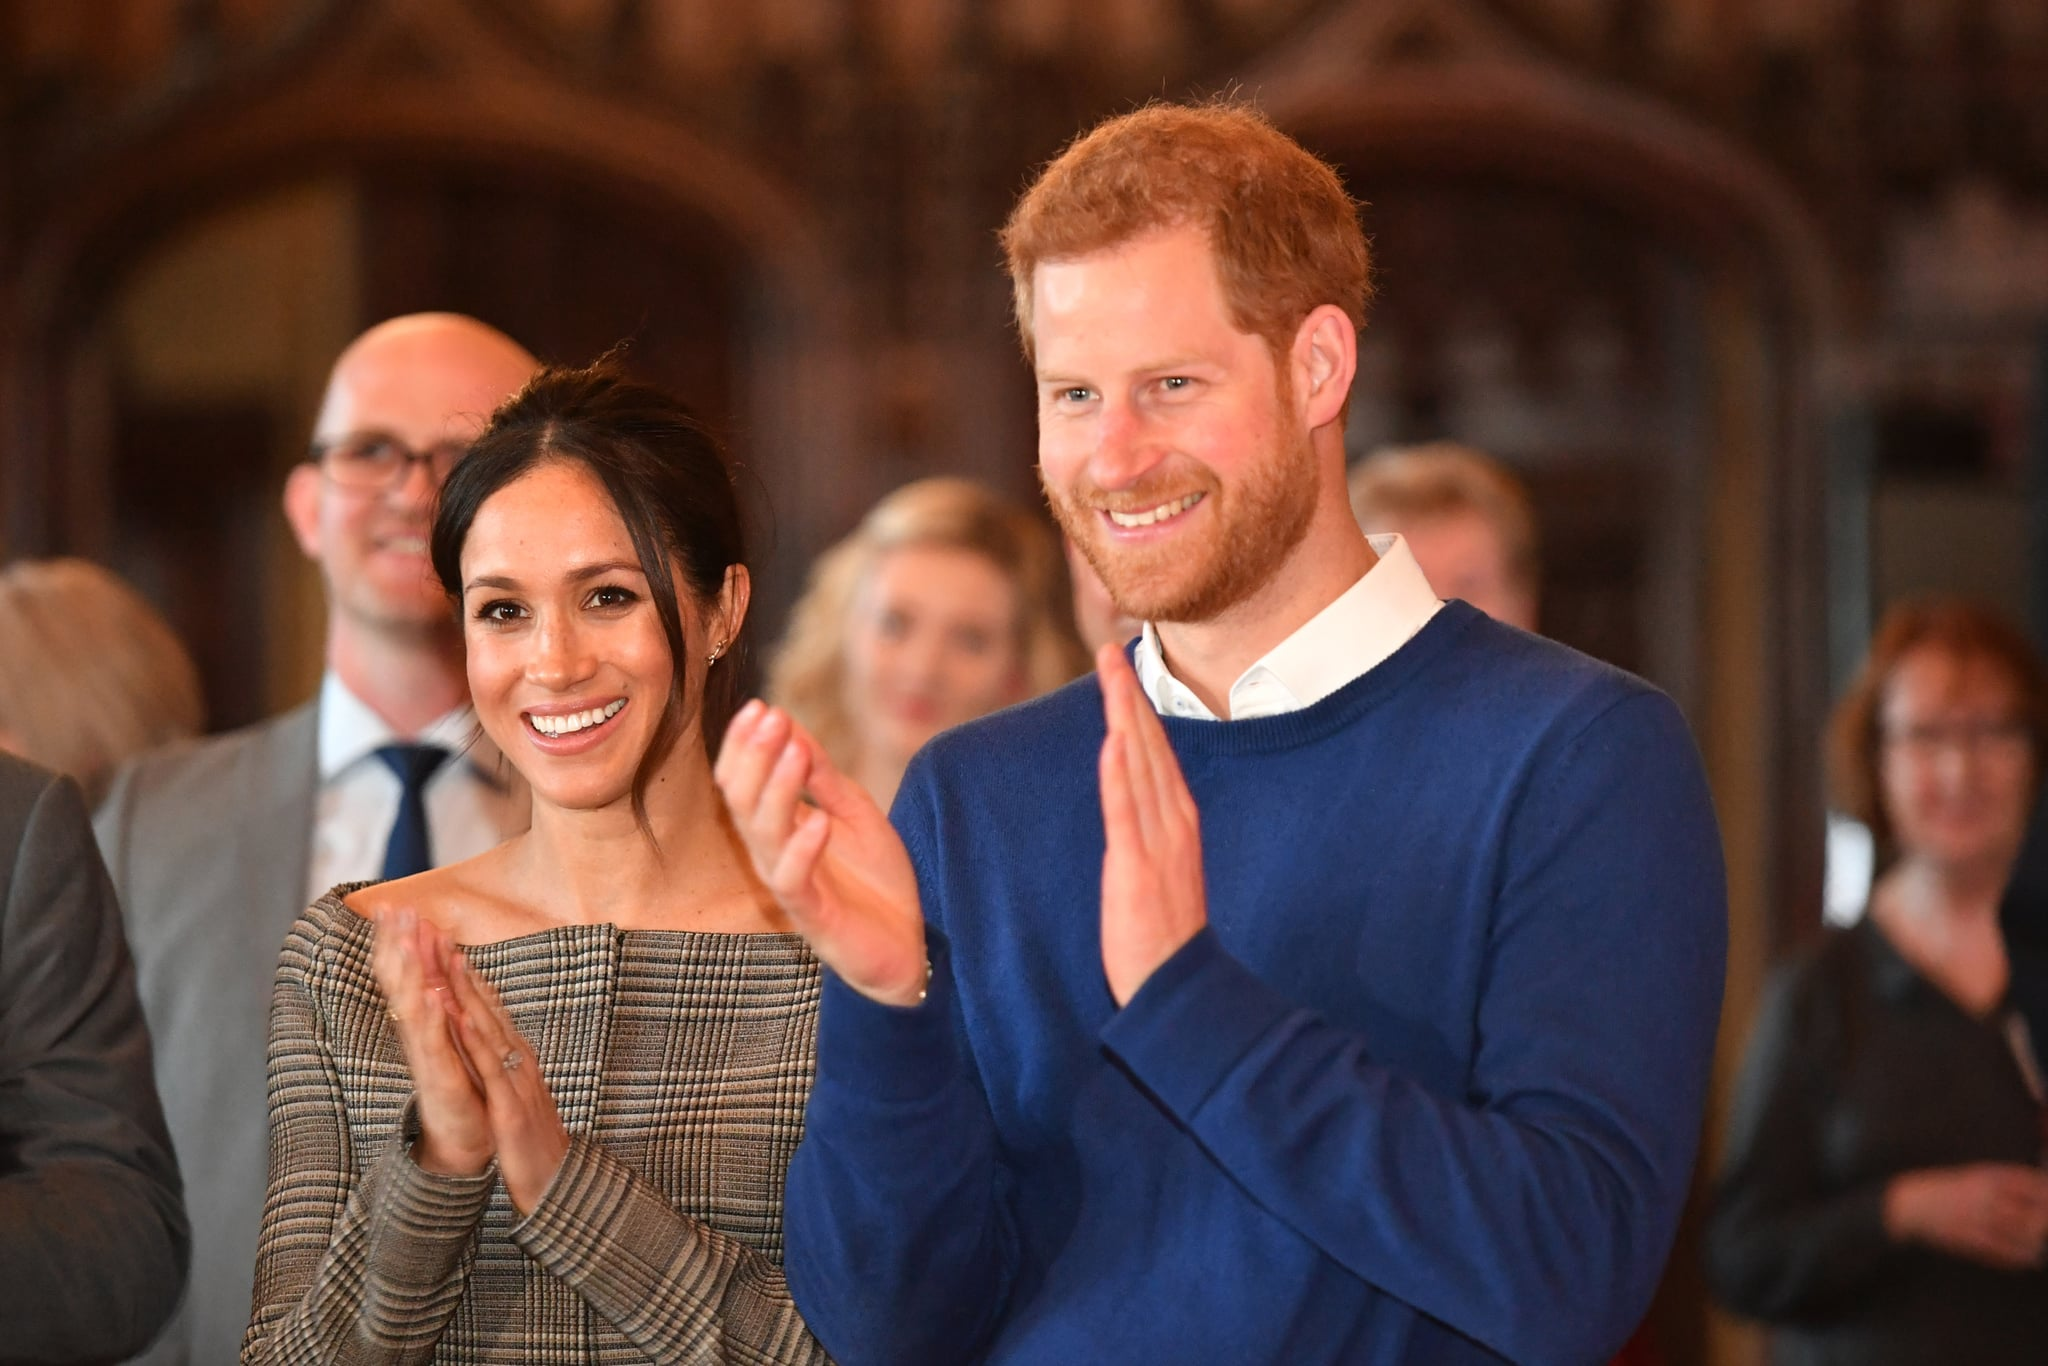 CARDIFF, WALES - JANUARY 18:  Prince Harry and his fiancee Meghan Markle watch a performace during their visit to Cardiff Castle on January 18, 2018 in Cardiff, Wales.  (Photo by Ben Birchall - WPA Pool/Getty Images)